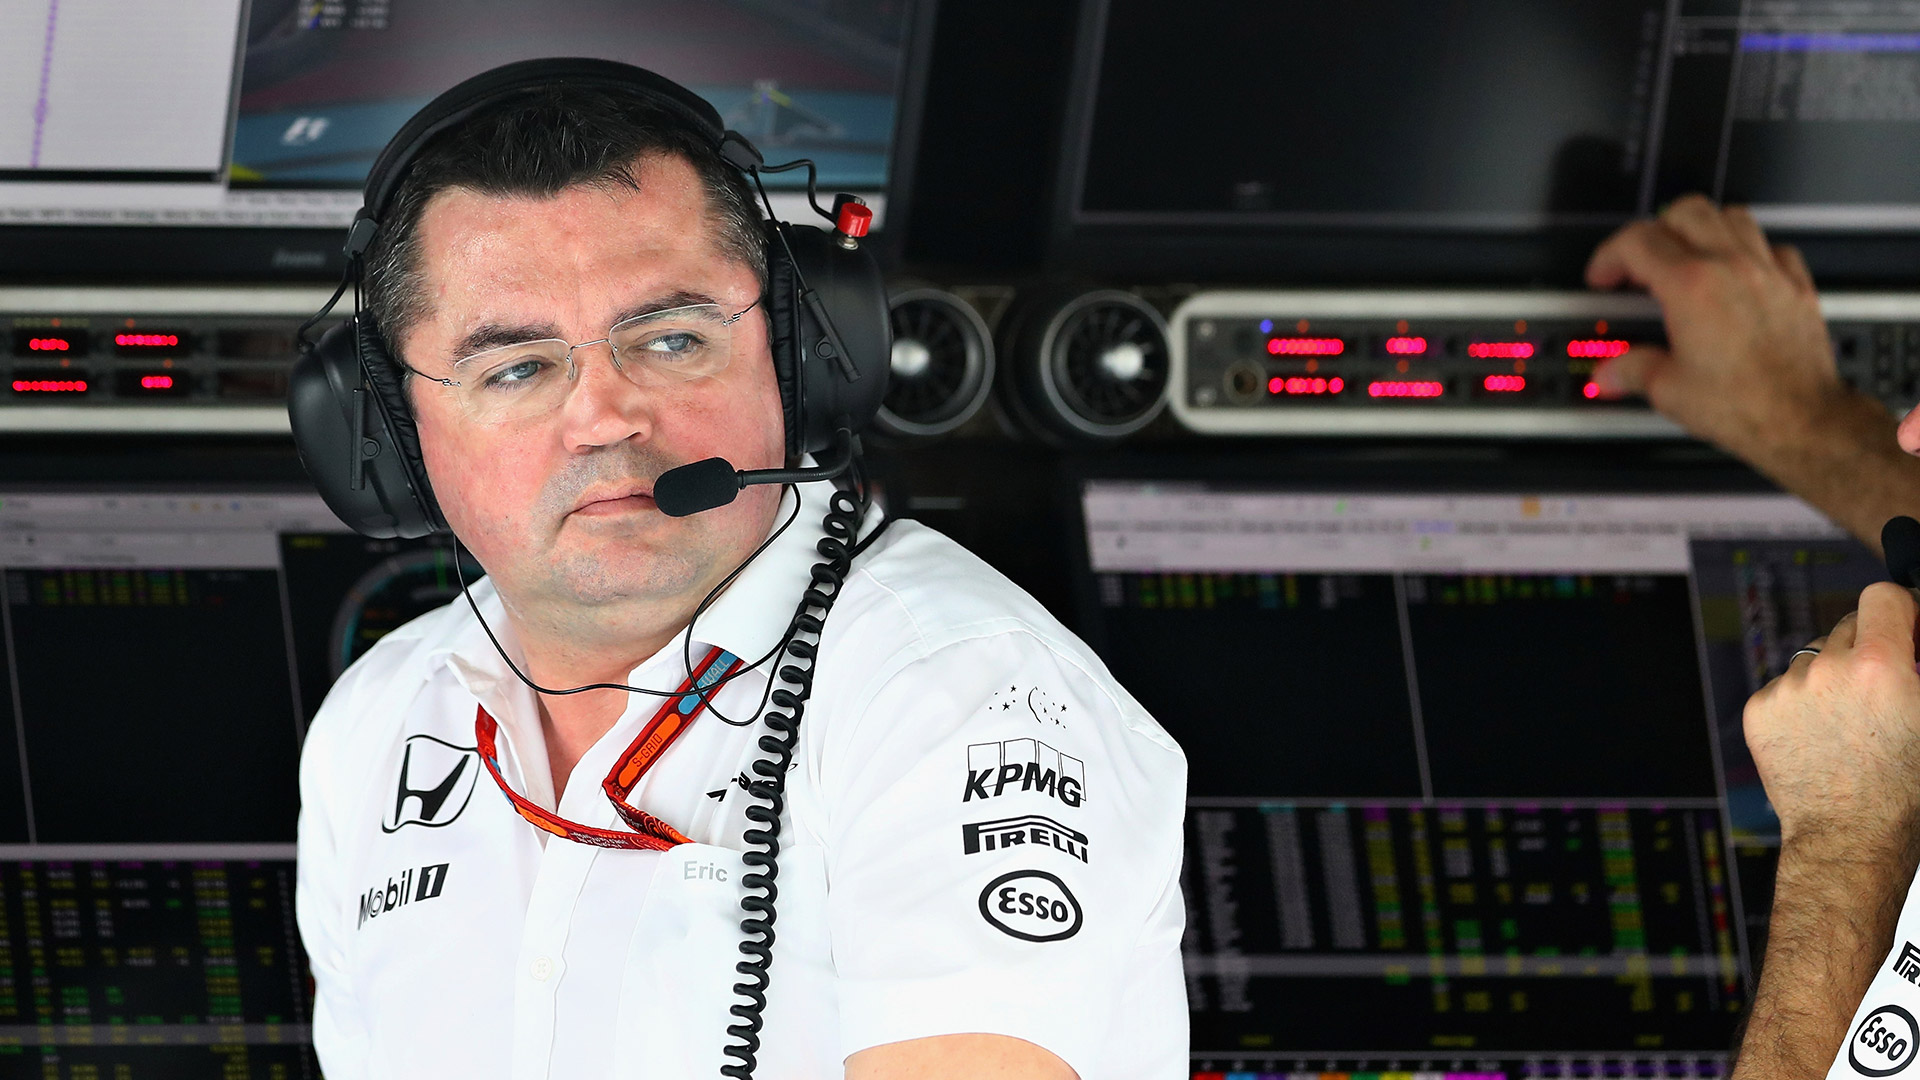 Photo of Éric Boullier, ex-chefe da McLaren é anunciado como novo diretor do GP da França